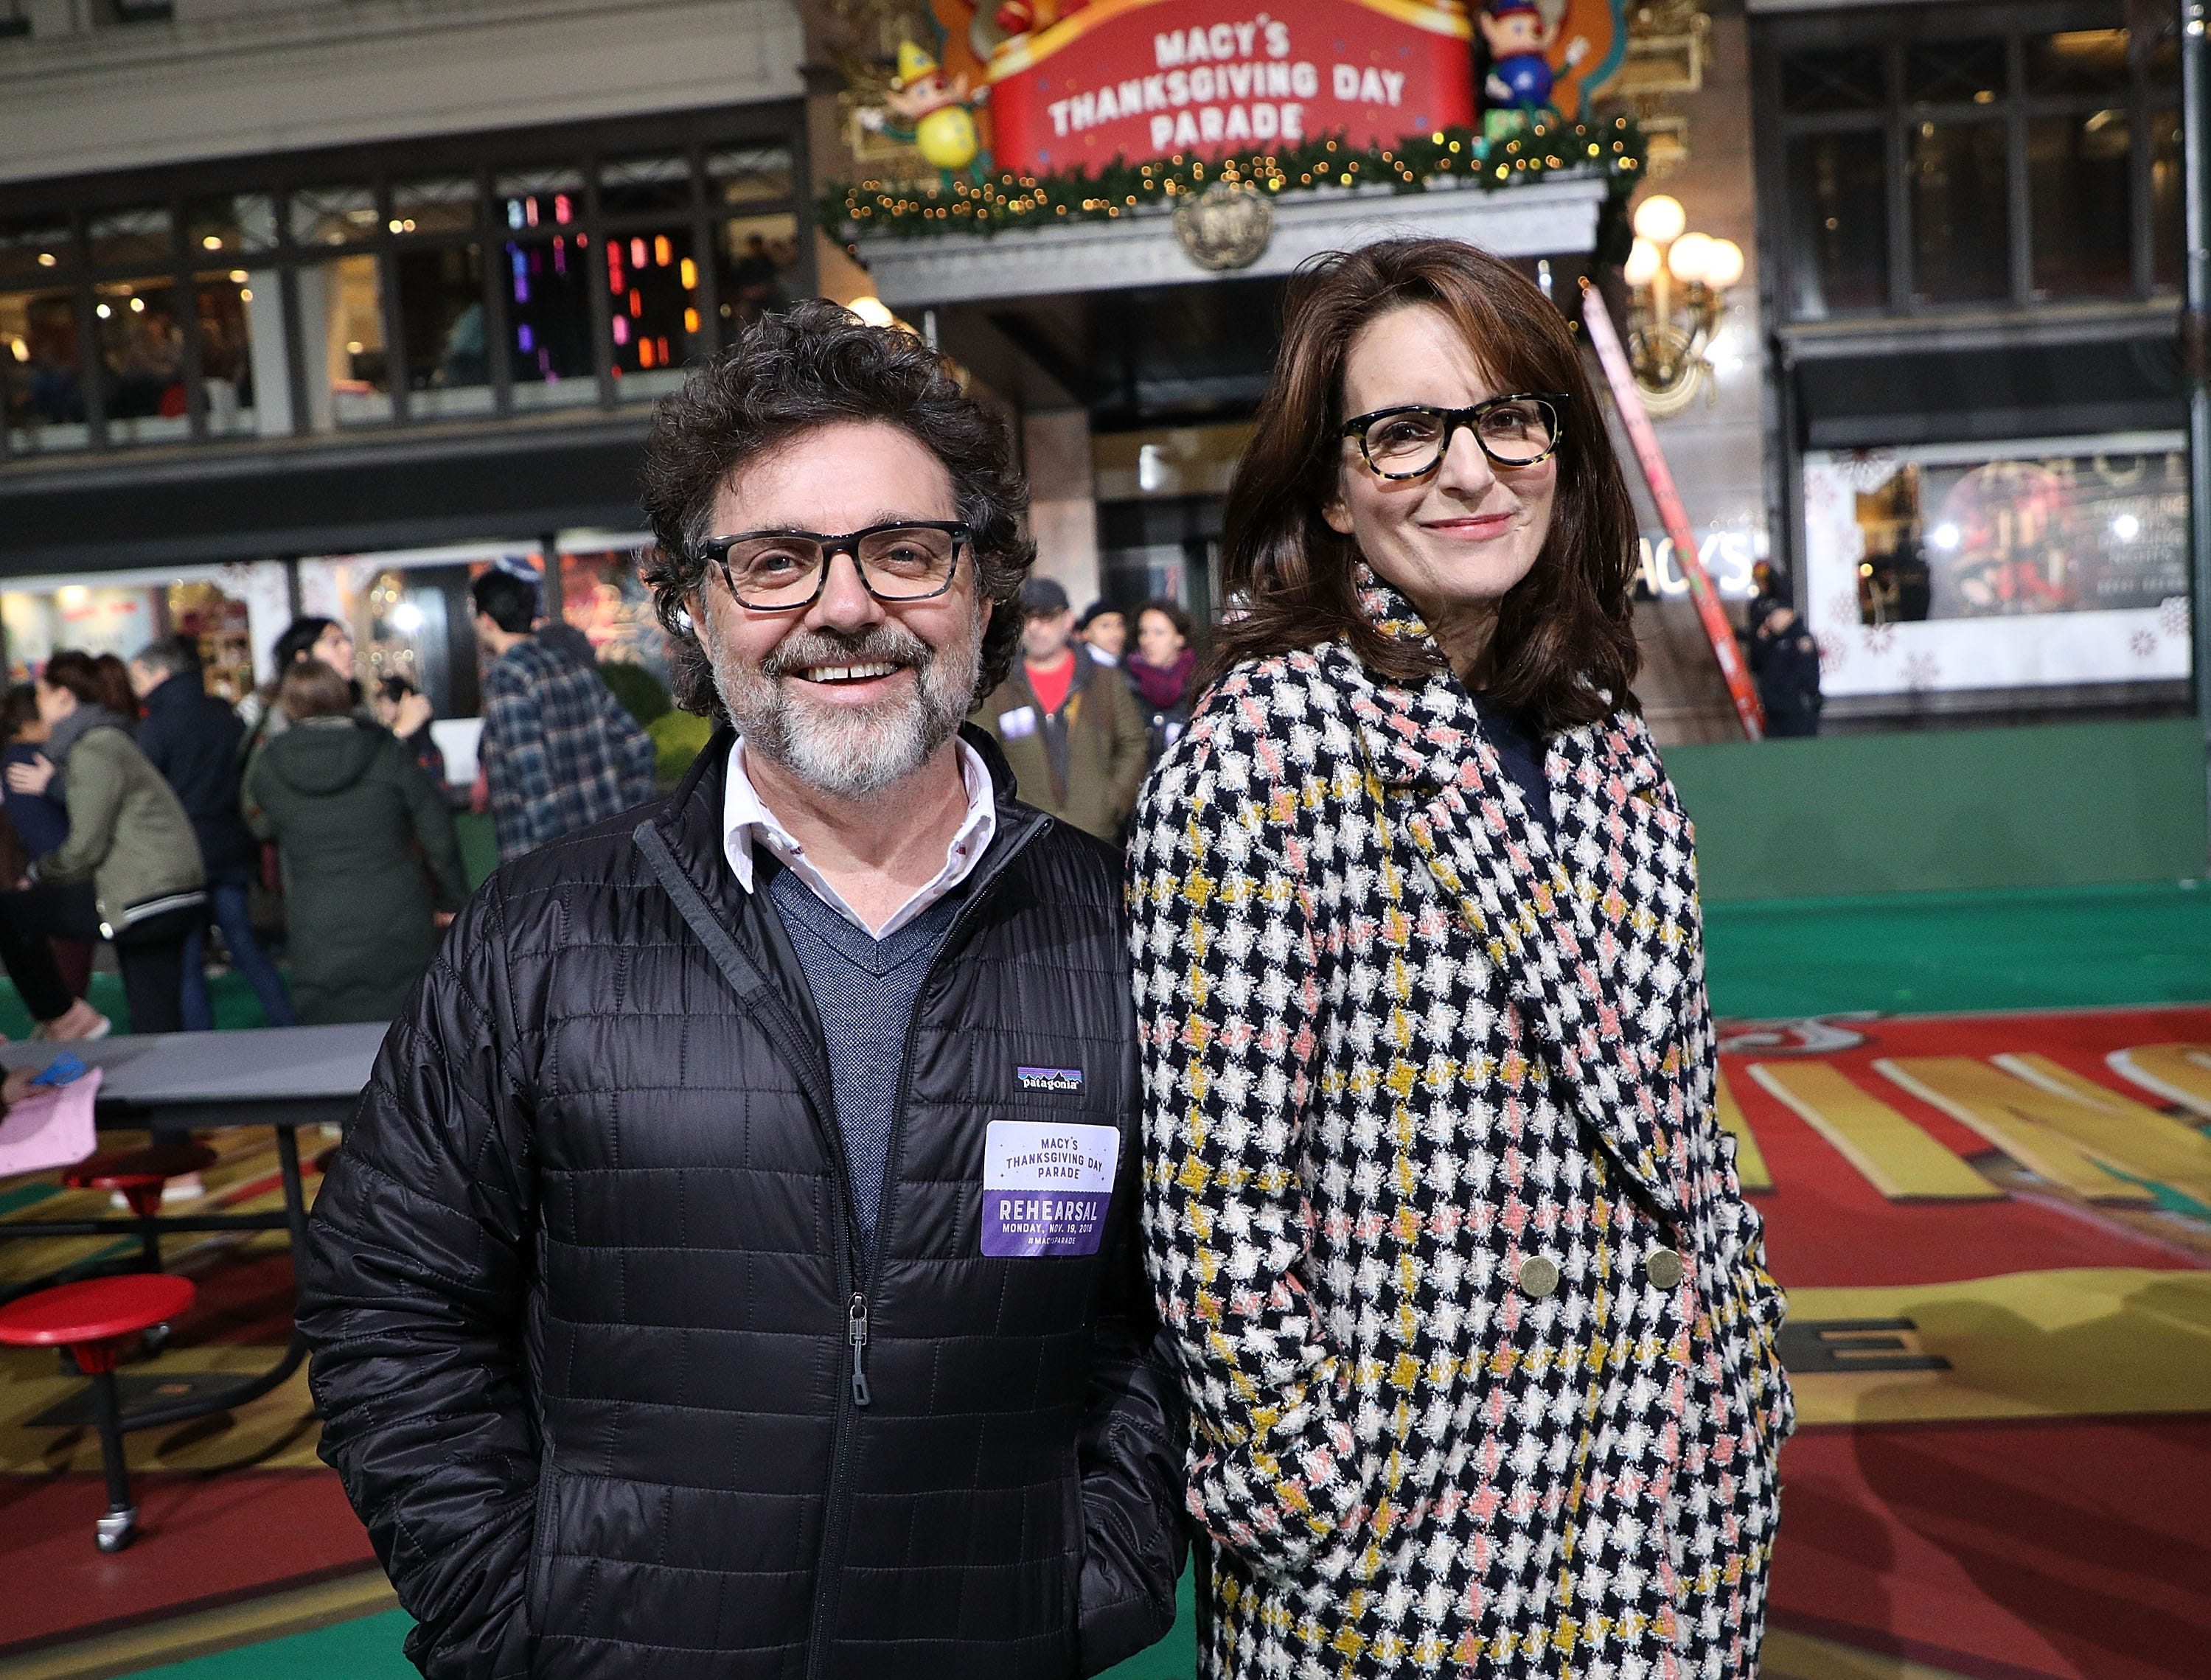 NEW YORK, NY - NOVEMBER 19: Jeff Richmond and Tina Fey attend Day 1 of 2018 Macy's Thanksgiving Day Parade Rehearsals at Macy's Herald Square on November 19, 2018 in New York City.  (Photo by Taylor Hill/WireImage) ORG XMIT: 775259763 ORIG FILE ID: 1063617692